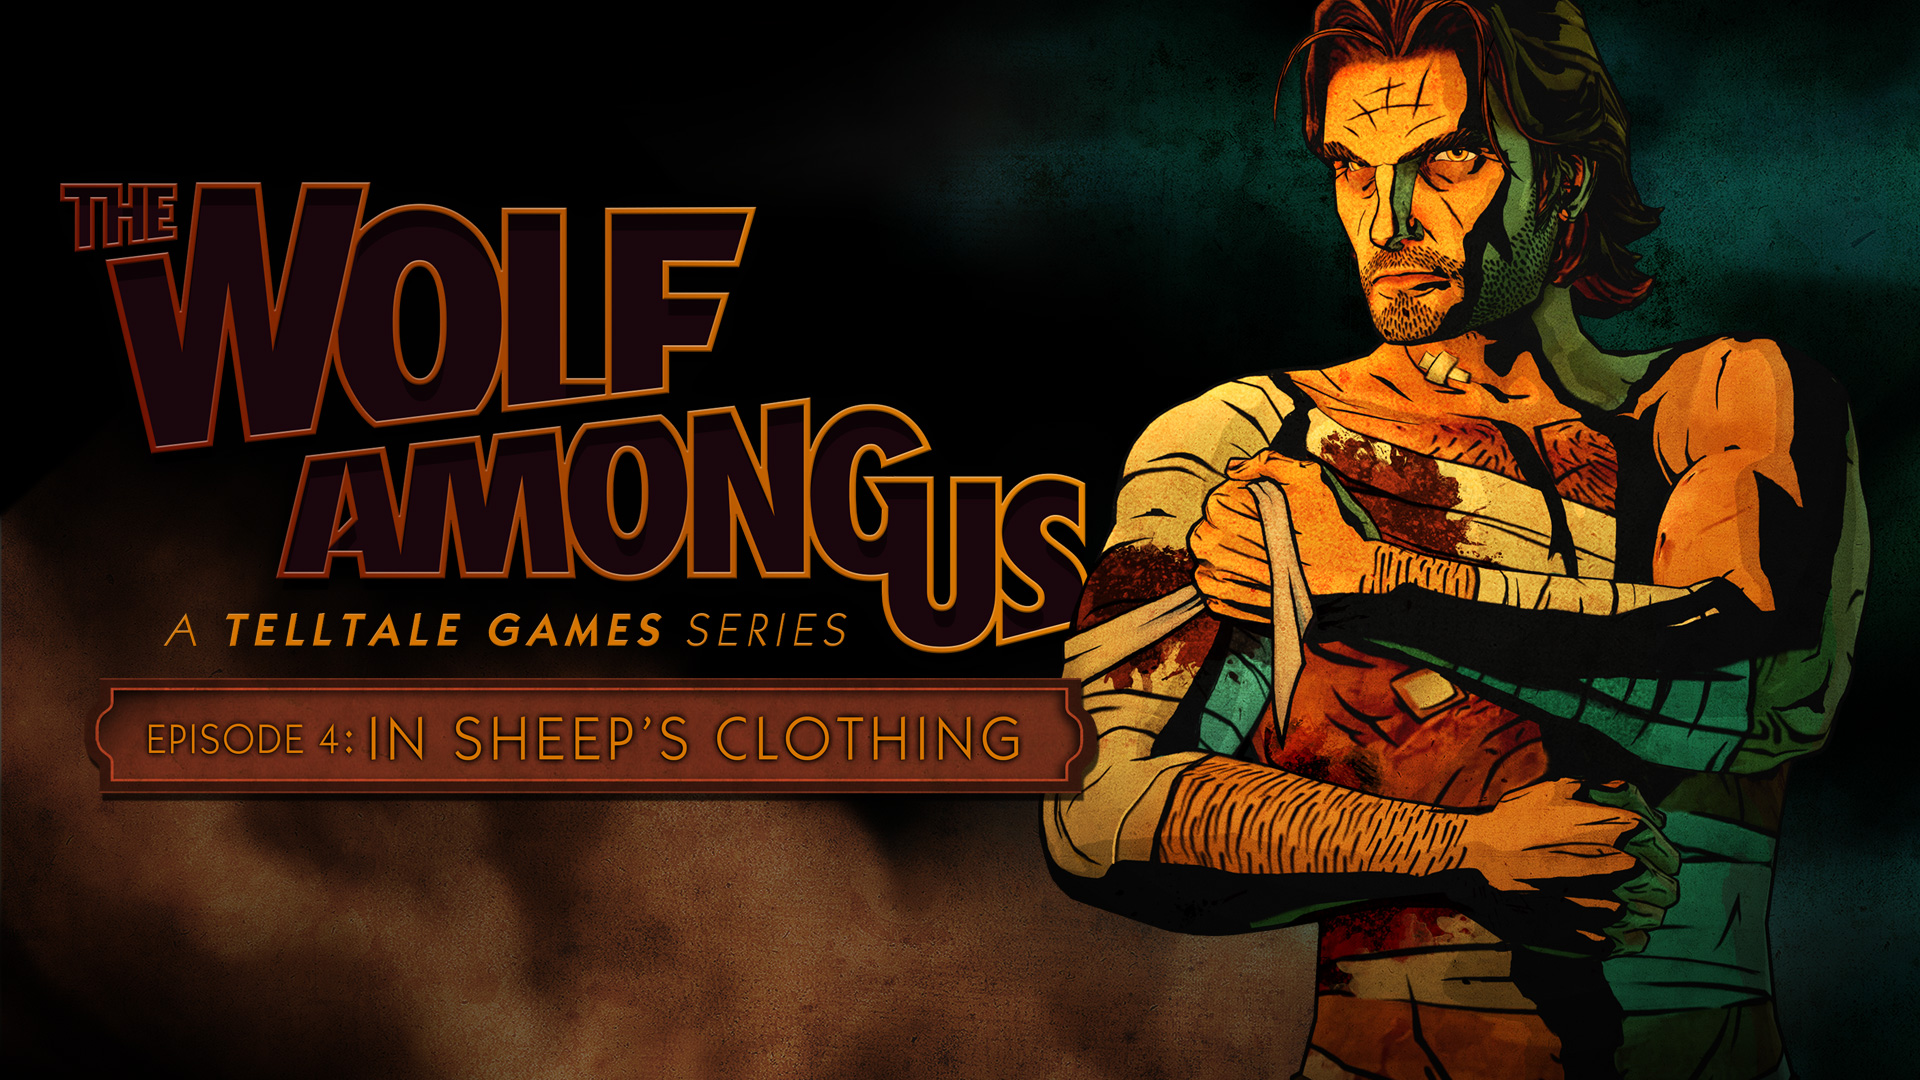 The Wolf Among Us: Episode 4 now available on Xbox 360